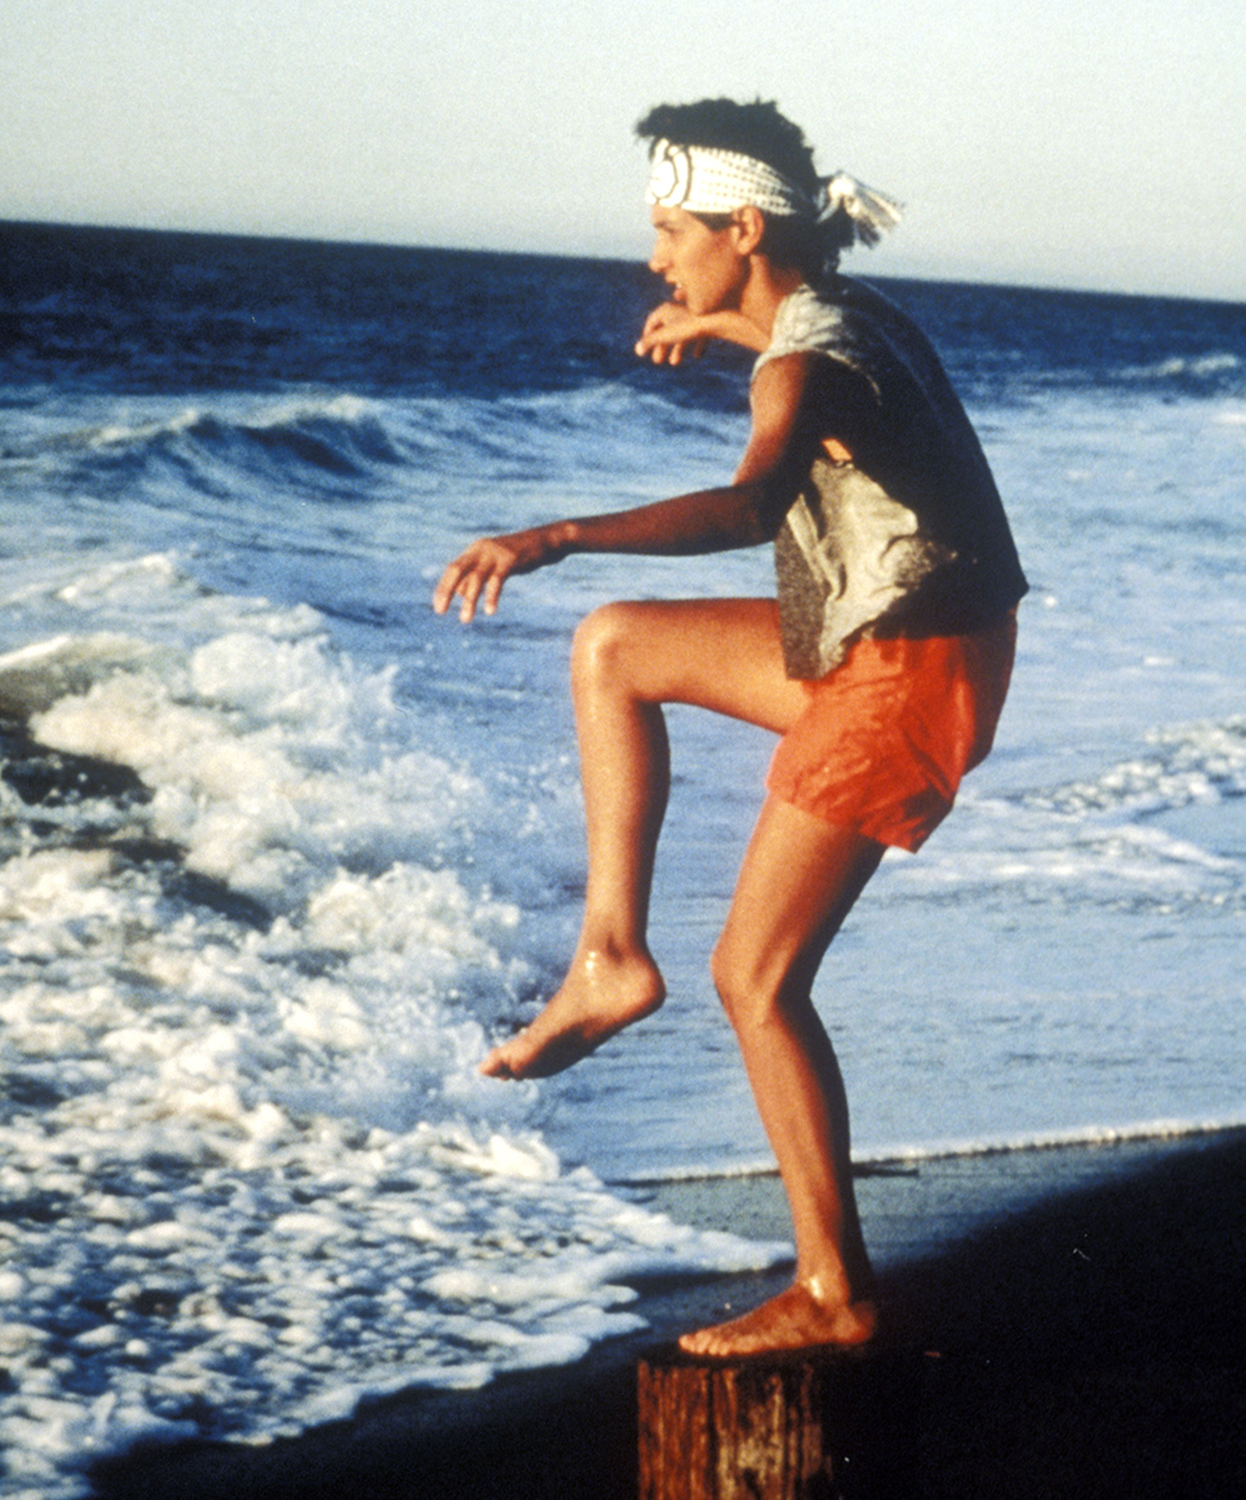 The Karate Kid - 1984